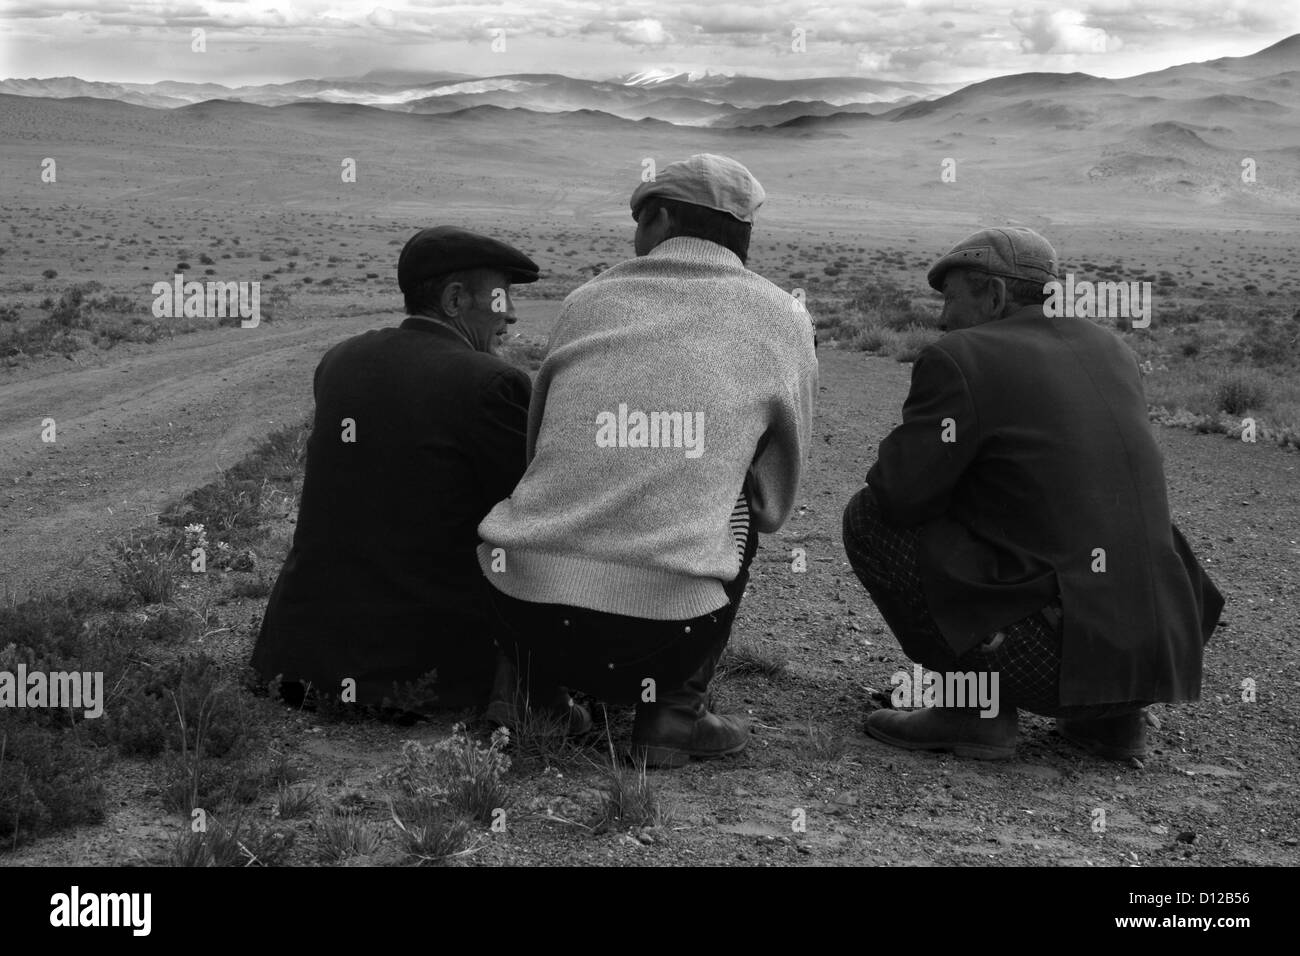 Old men waiting for the engine of the van to cool down, on the road from Ulaankhus to Olgii - Stock Image